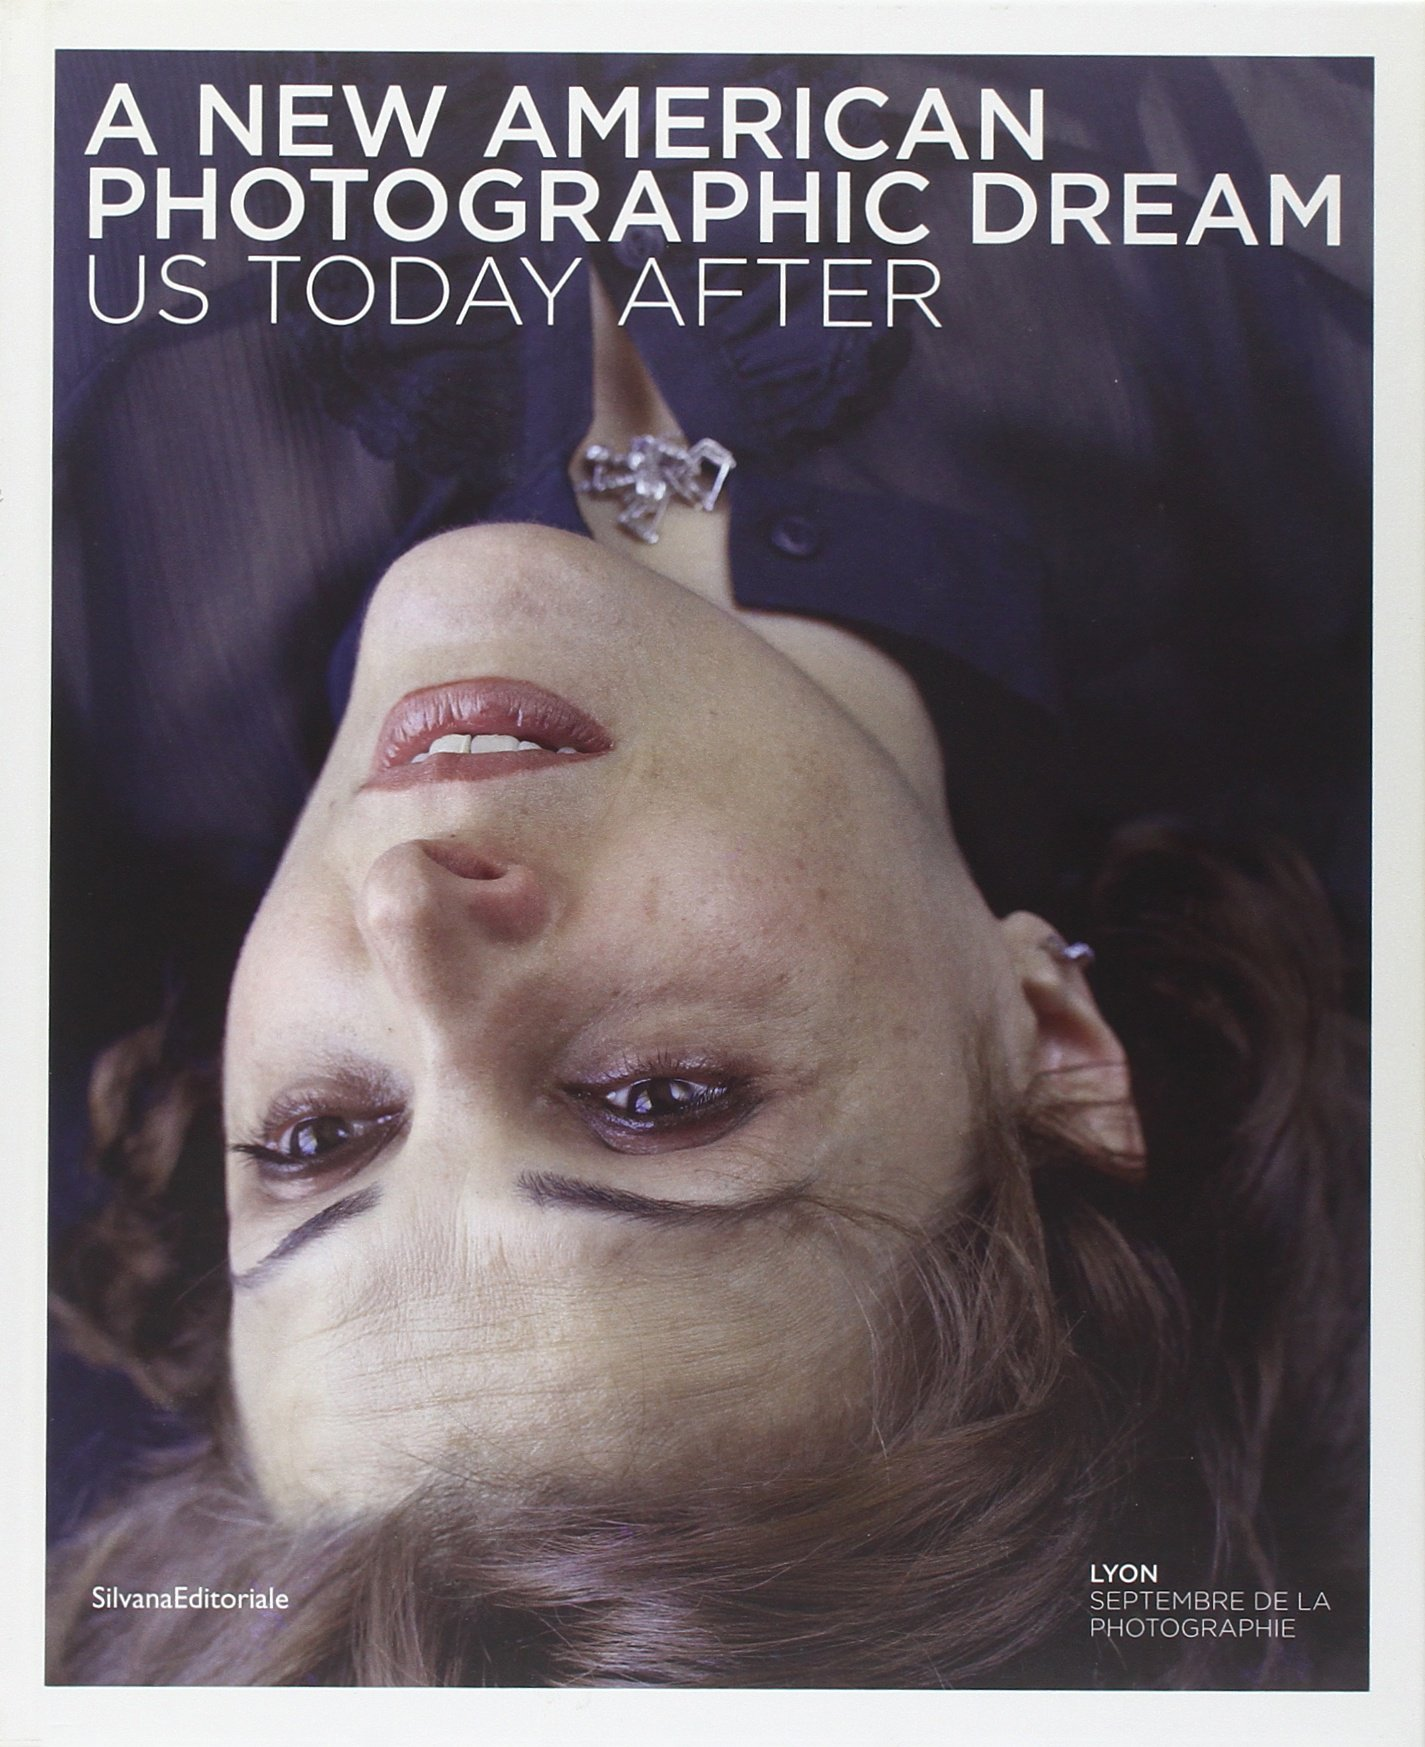 Read Online A New American Photographic Dream: US Today After Text fb2 book